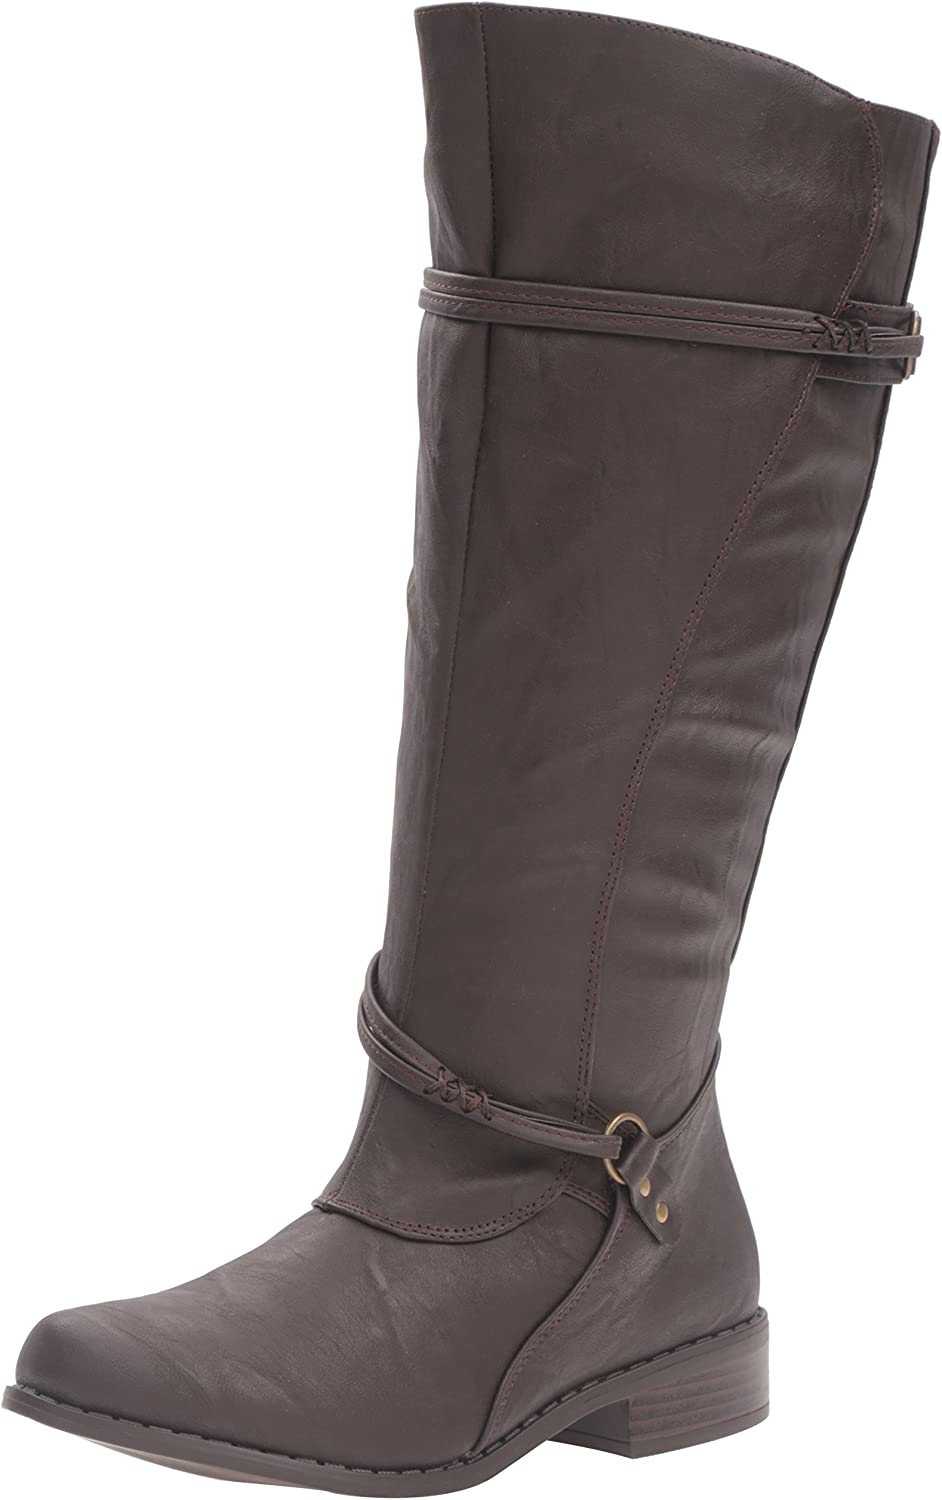 Brinley Co Womens Olive-xwc Riding Boot